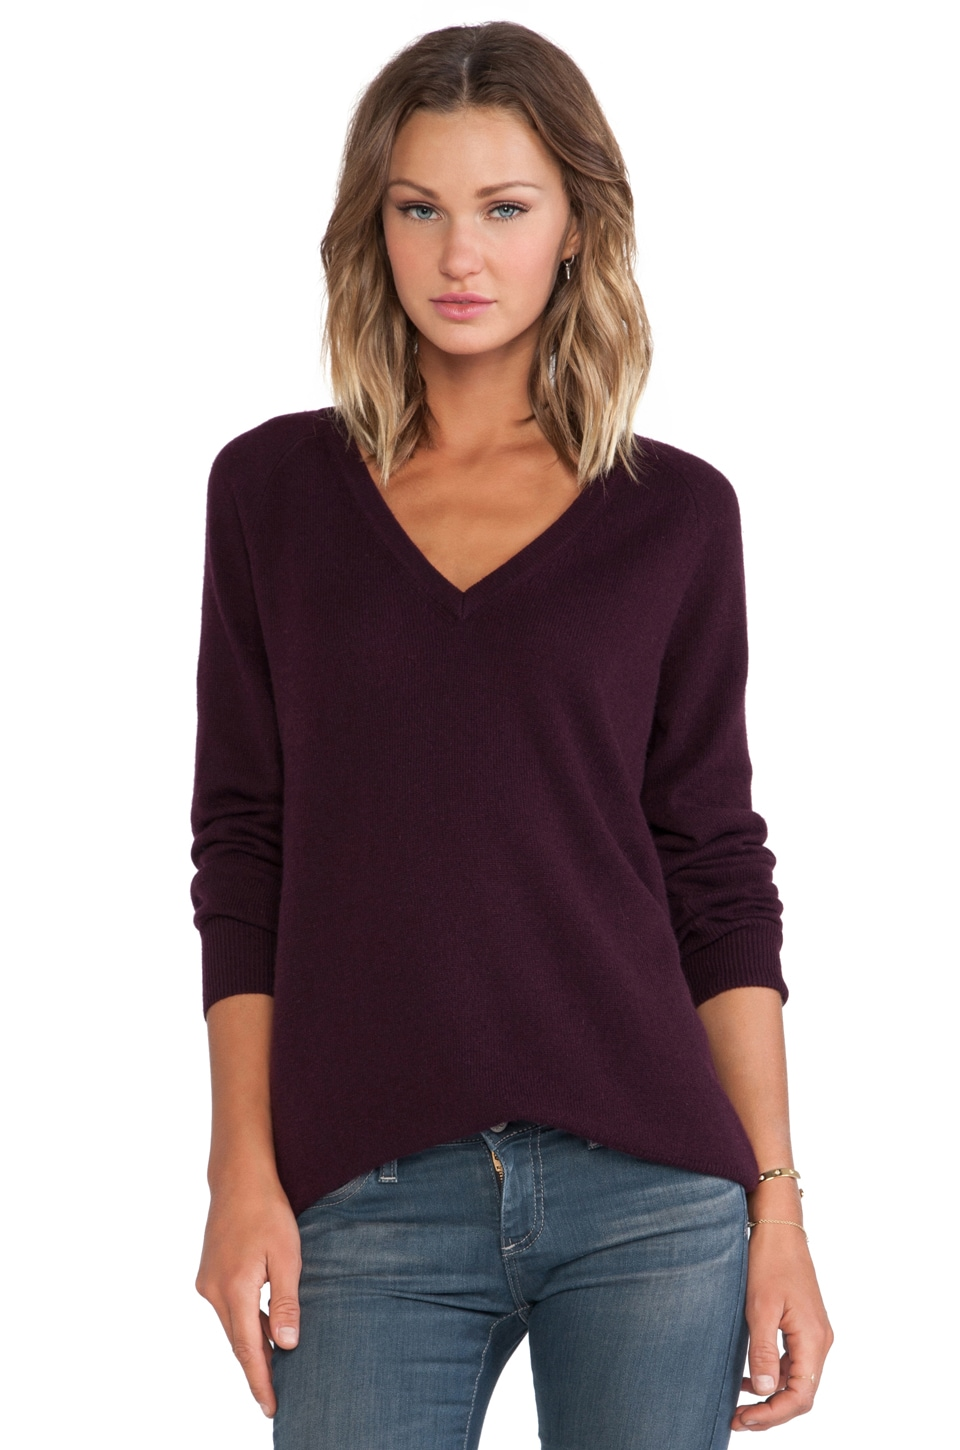 Equipment Asher V Neck Sweater in Cabernet